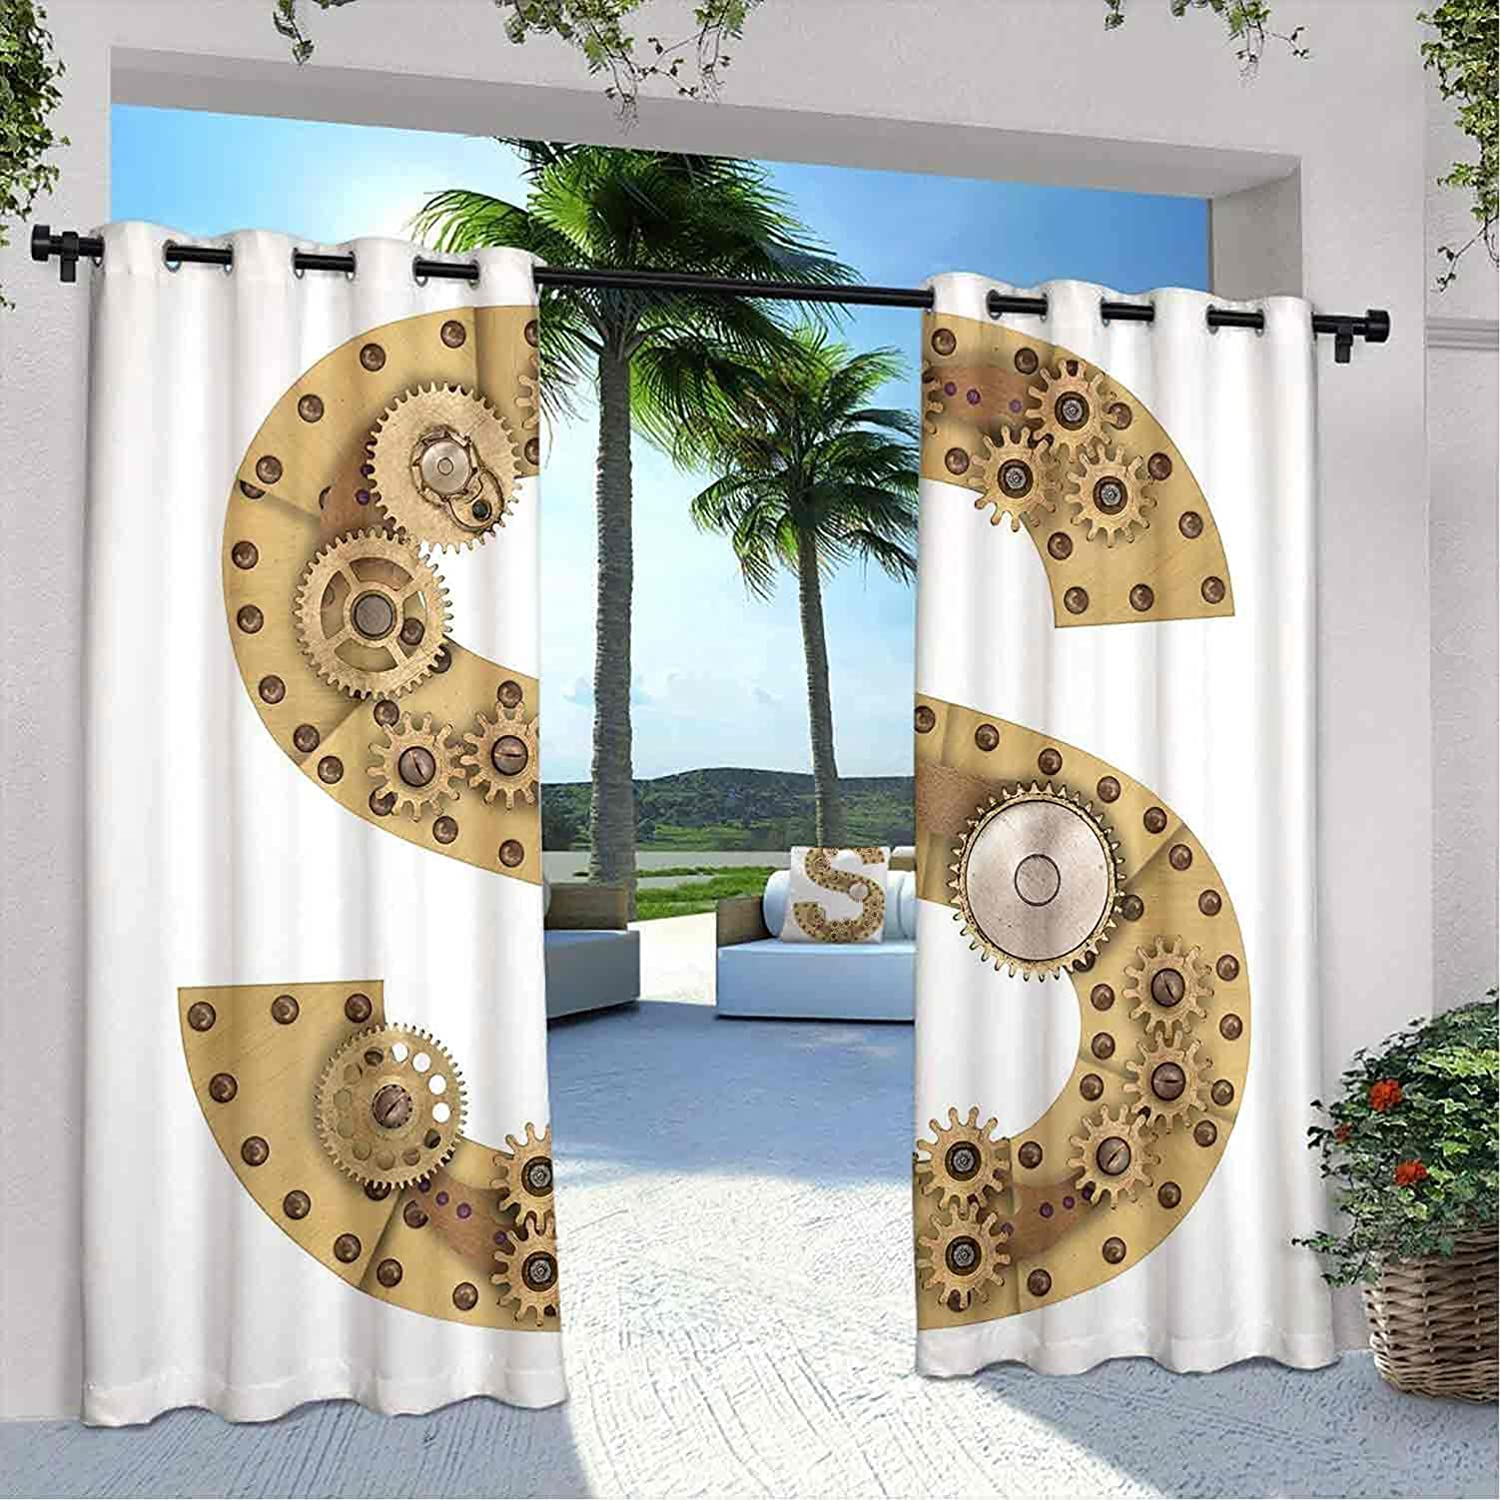 Letter low-pricing S Waterproof Gazebo Typogr Curtains Selling and selling Technology Gearwheel